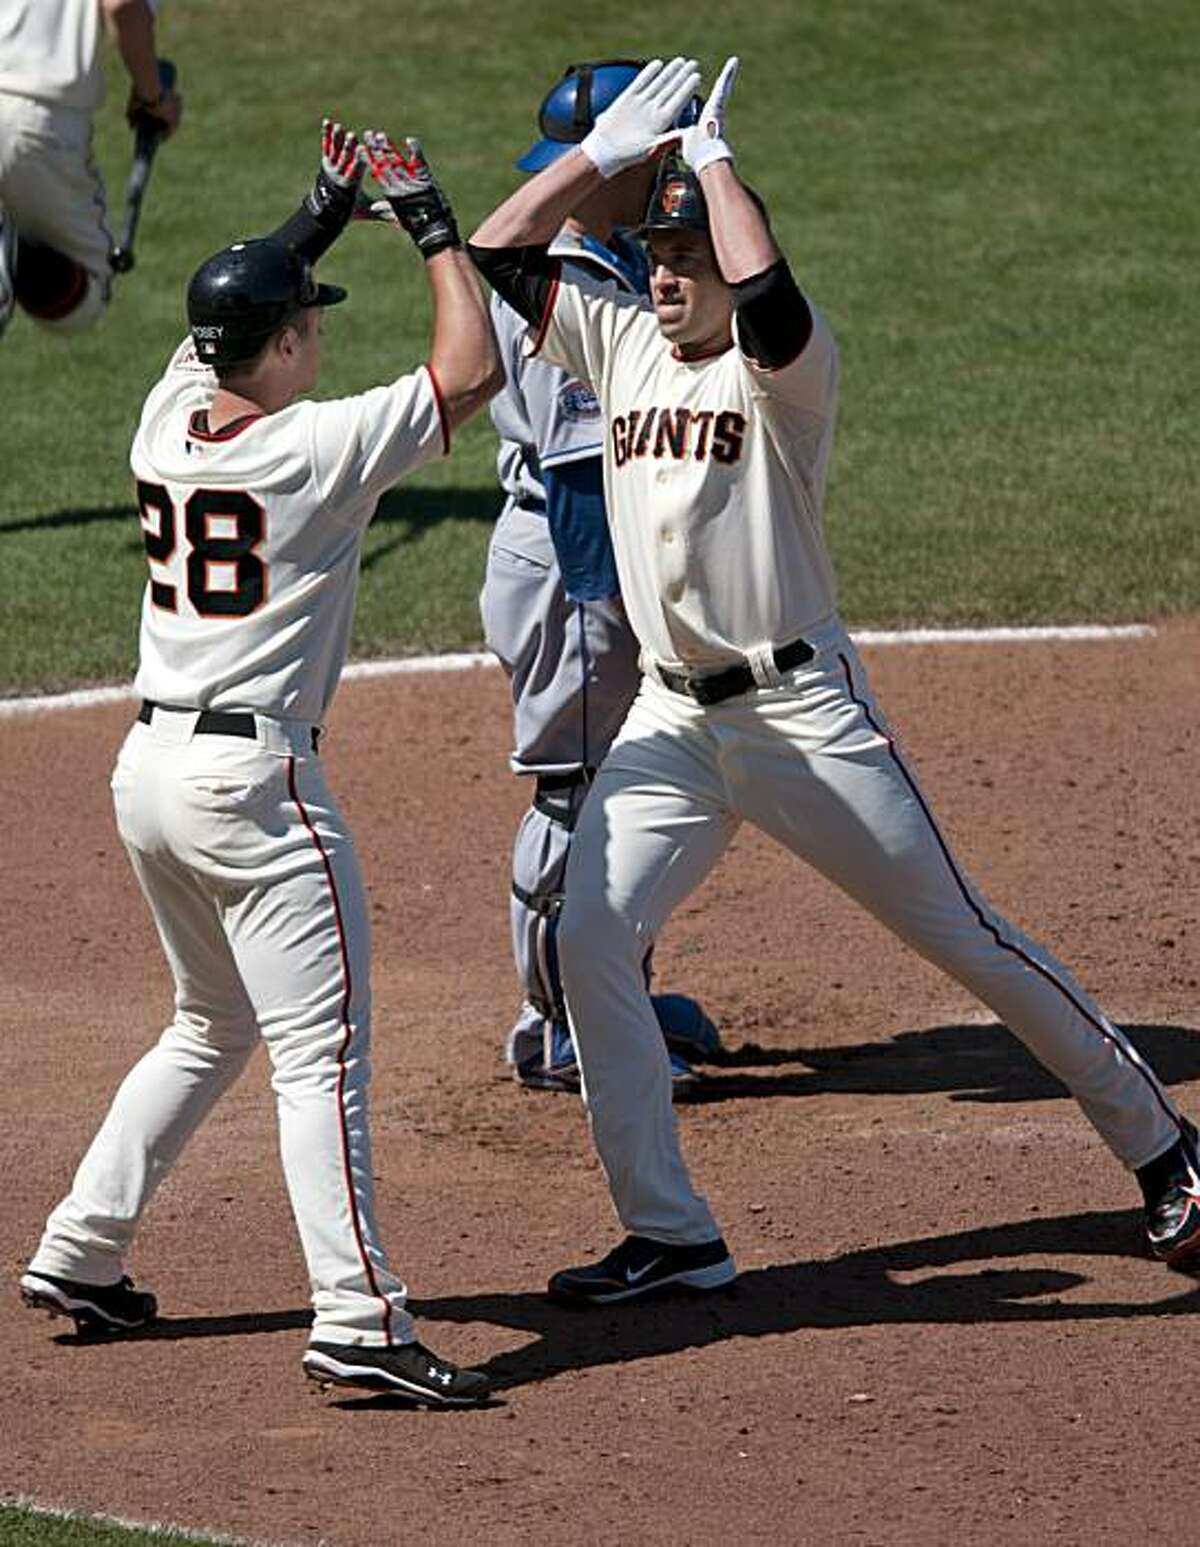 Pat Burrell gets a huge congratulations from Buster Posey as he crosses home plate after blasting a two-run home run in the bottom of the eighth inning Saturday.